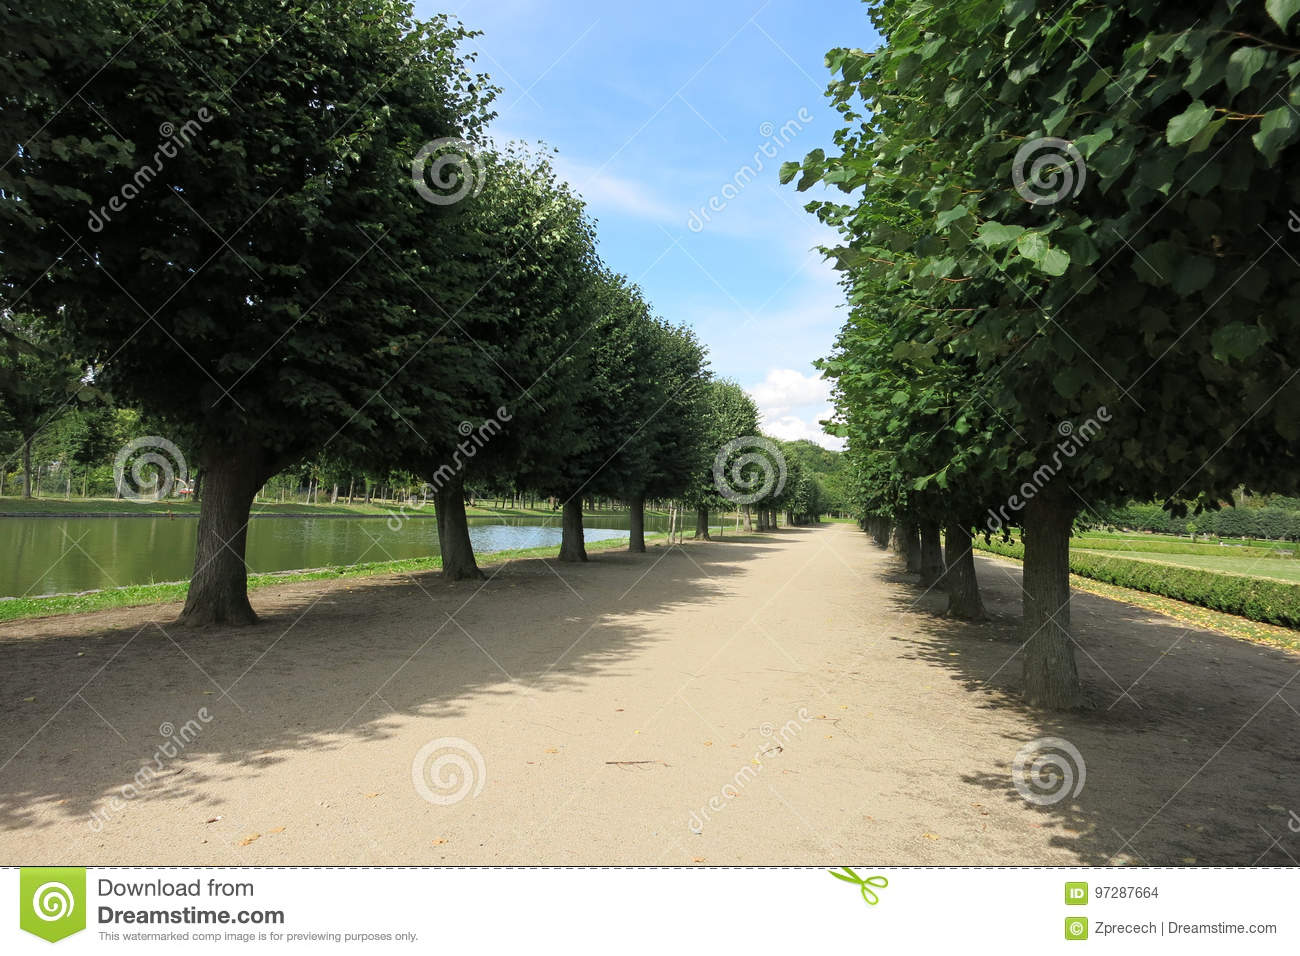 Lime tree alley